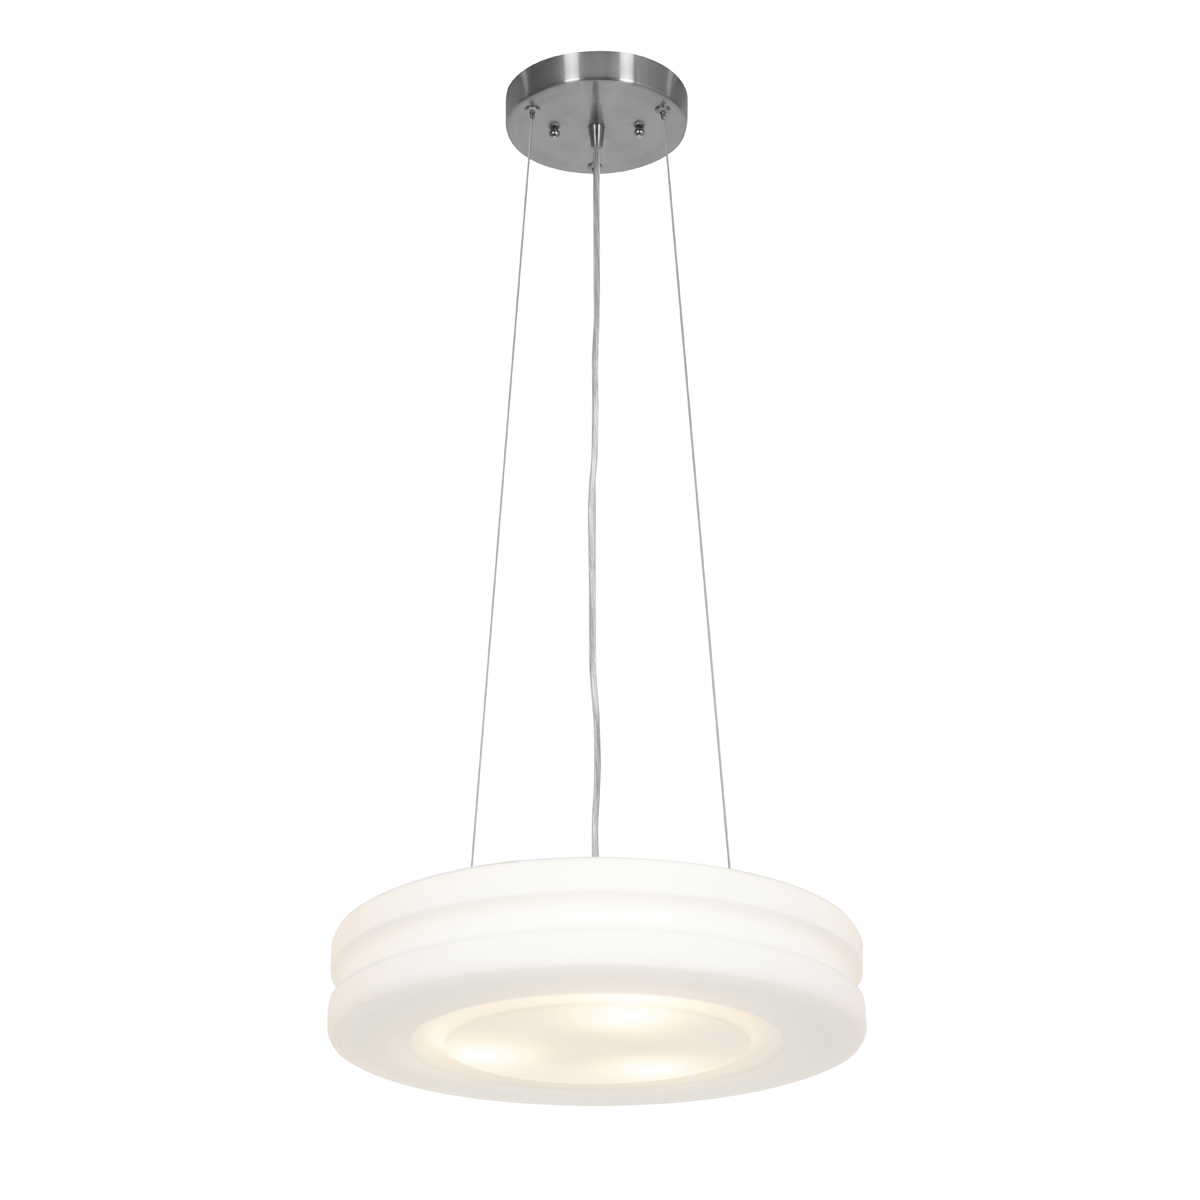 desert 8 helius lighting group tags. Access Lighting Pendant Lights Light Fixtures Desert 8 Helius Group Tags